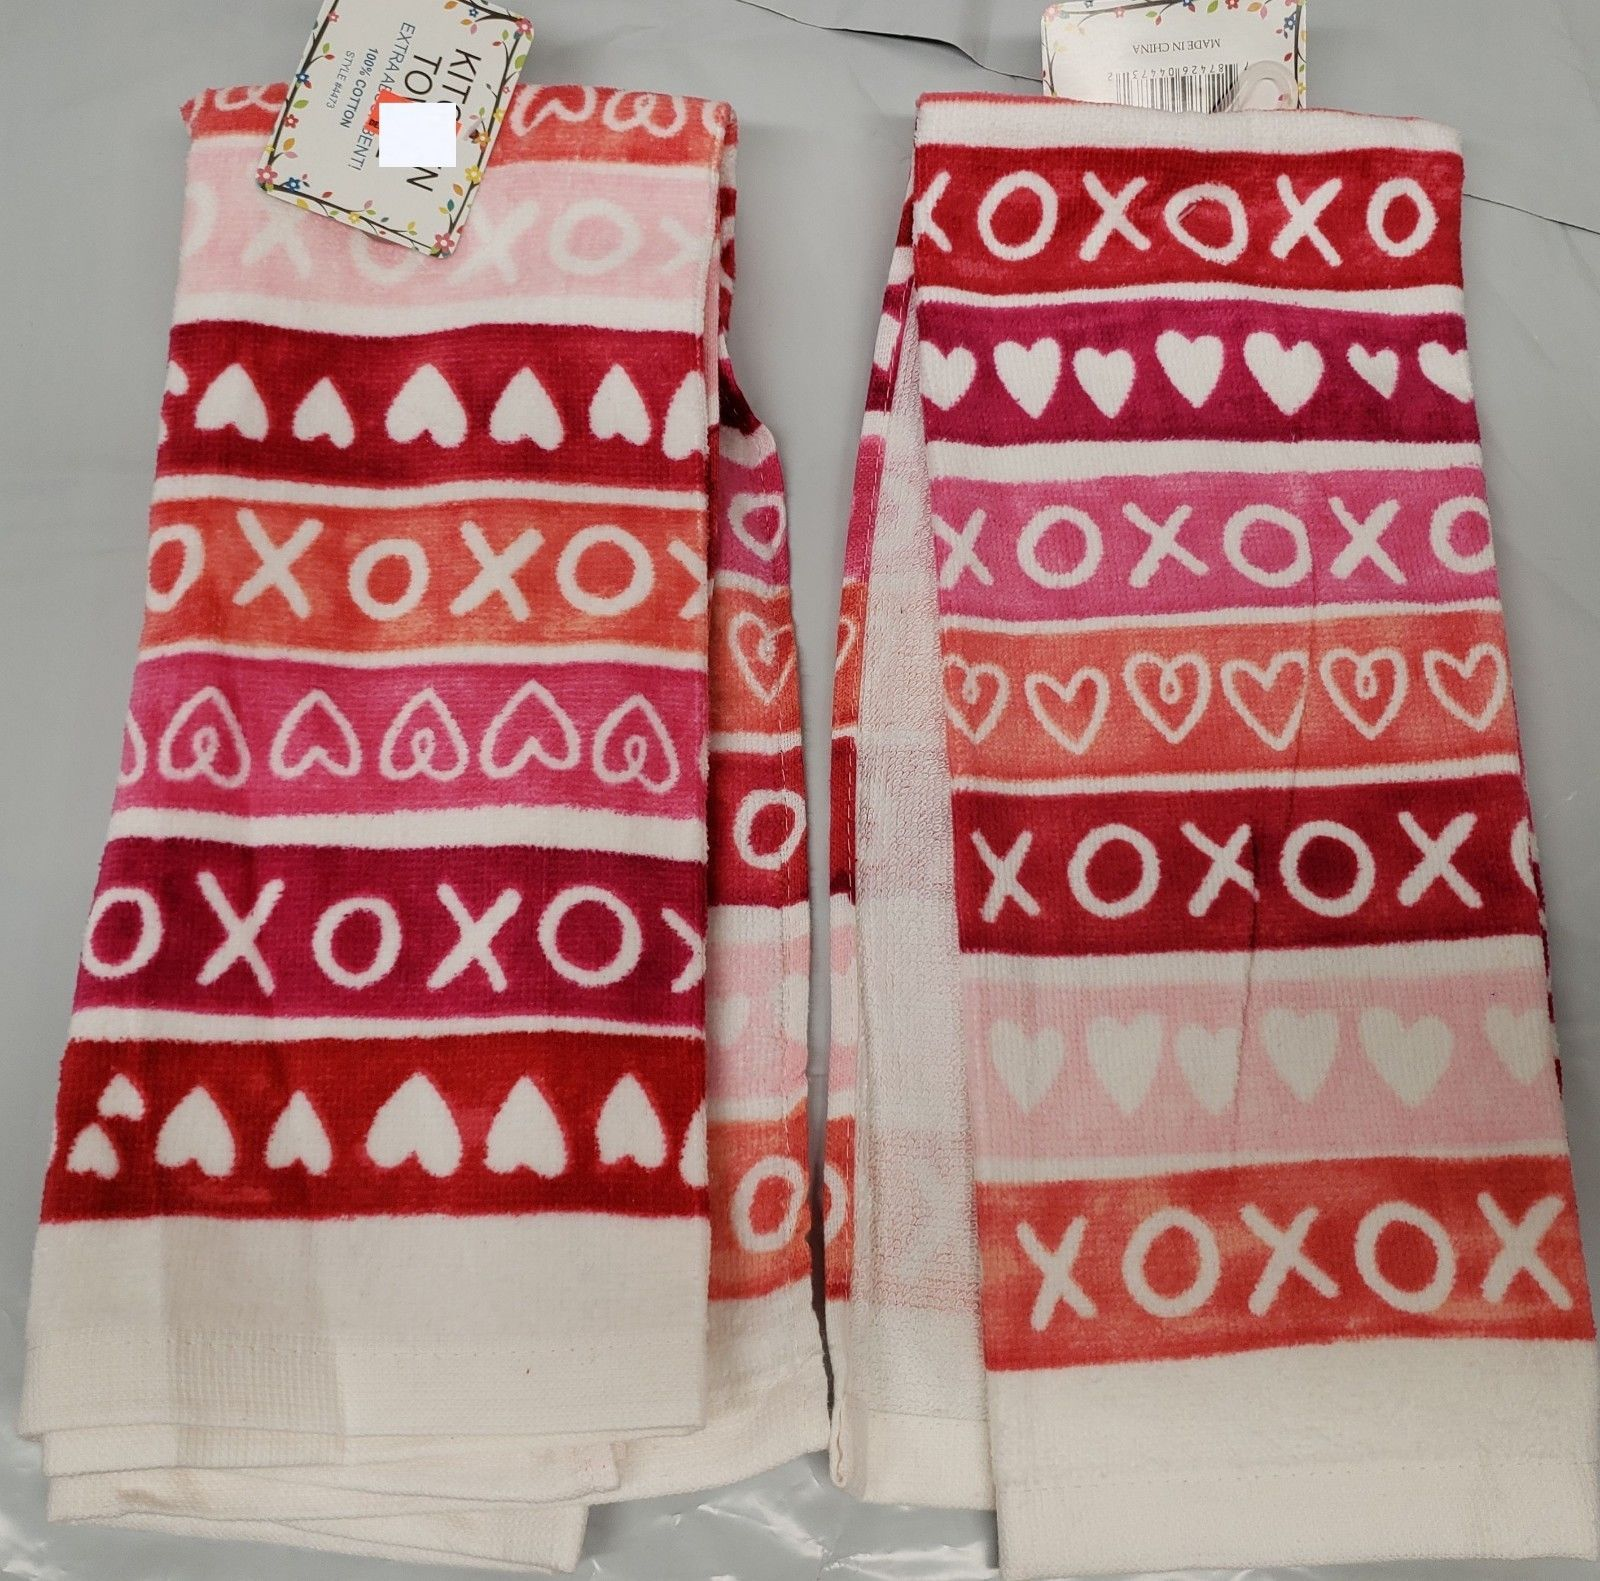 "Primary image for SET of 2 SAME PRINTED KITCHEN TOWELS (15"" x 25"") LOVE HEARTS, XOXO DESIGN by AM"